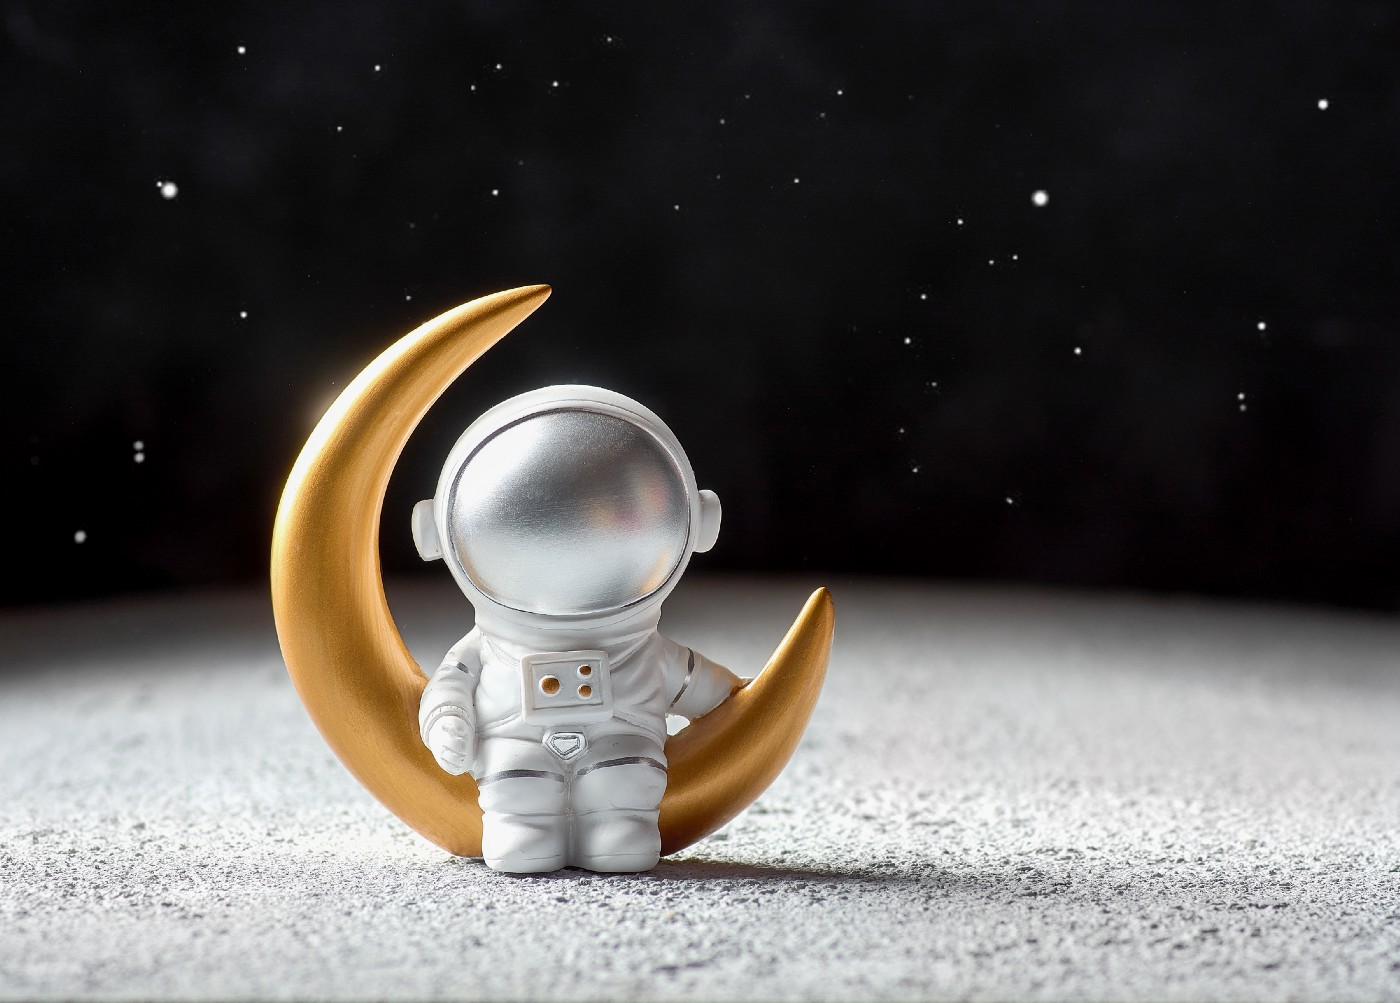 the image is that of a toy astronaut sitting on the shape of a crescent moon. The background is a dark starry sky. It appears that both are blow up pieces. the astronaut is in silvery white and the moon is golden